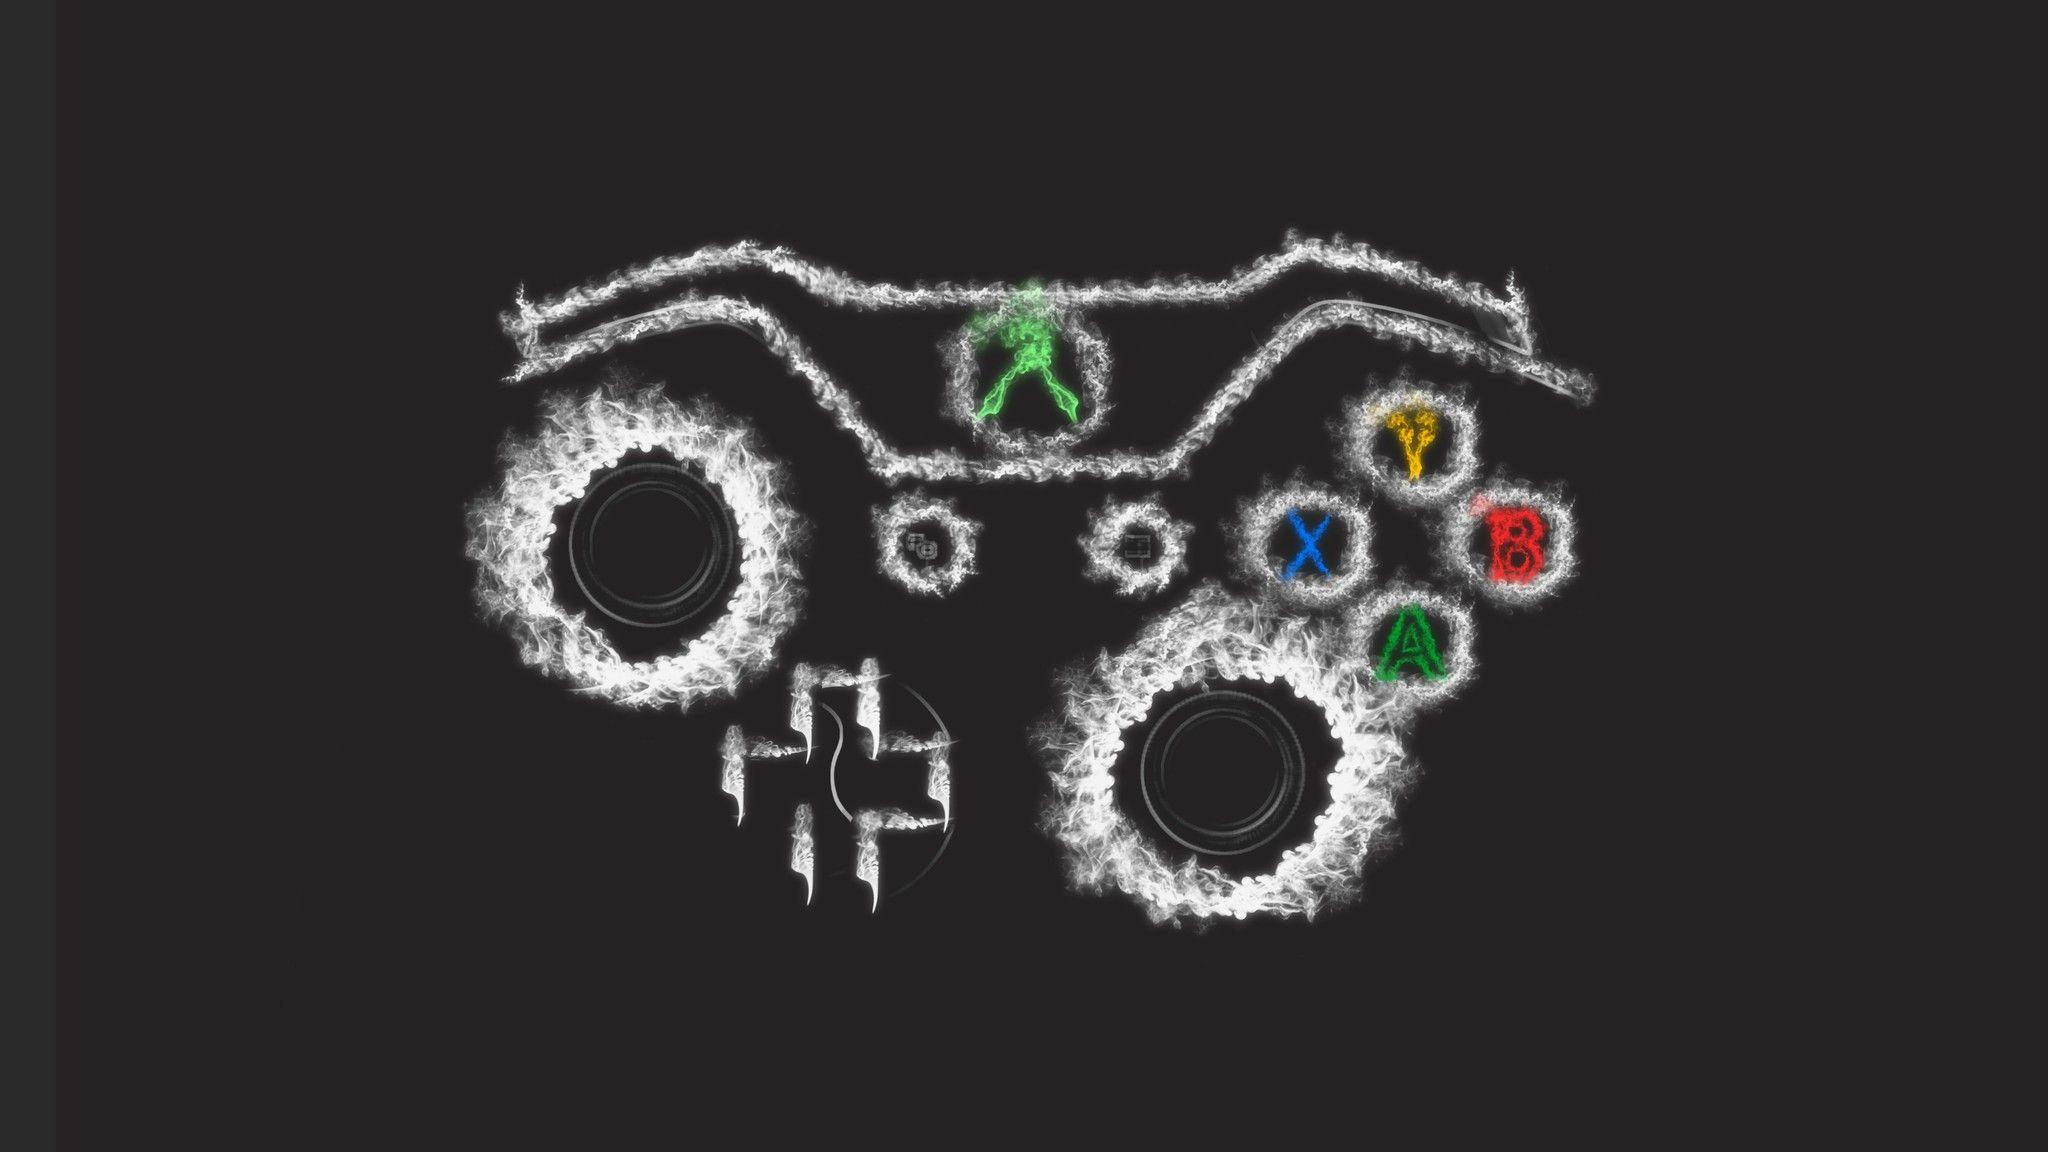 2048x1152 Xbox Controller Art 2048x1152 Resolution HD 4k